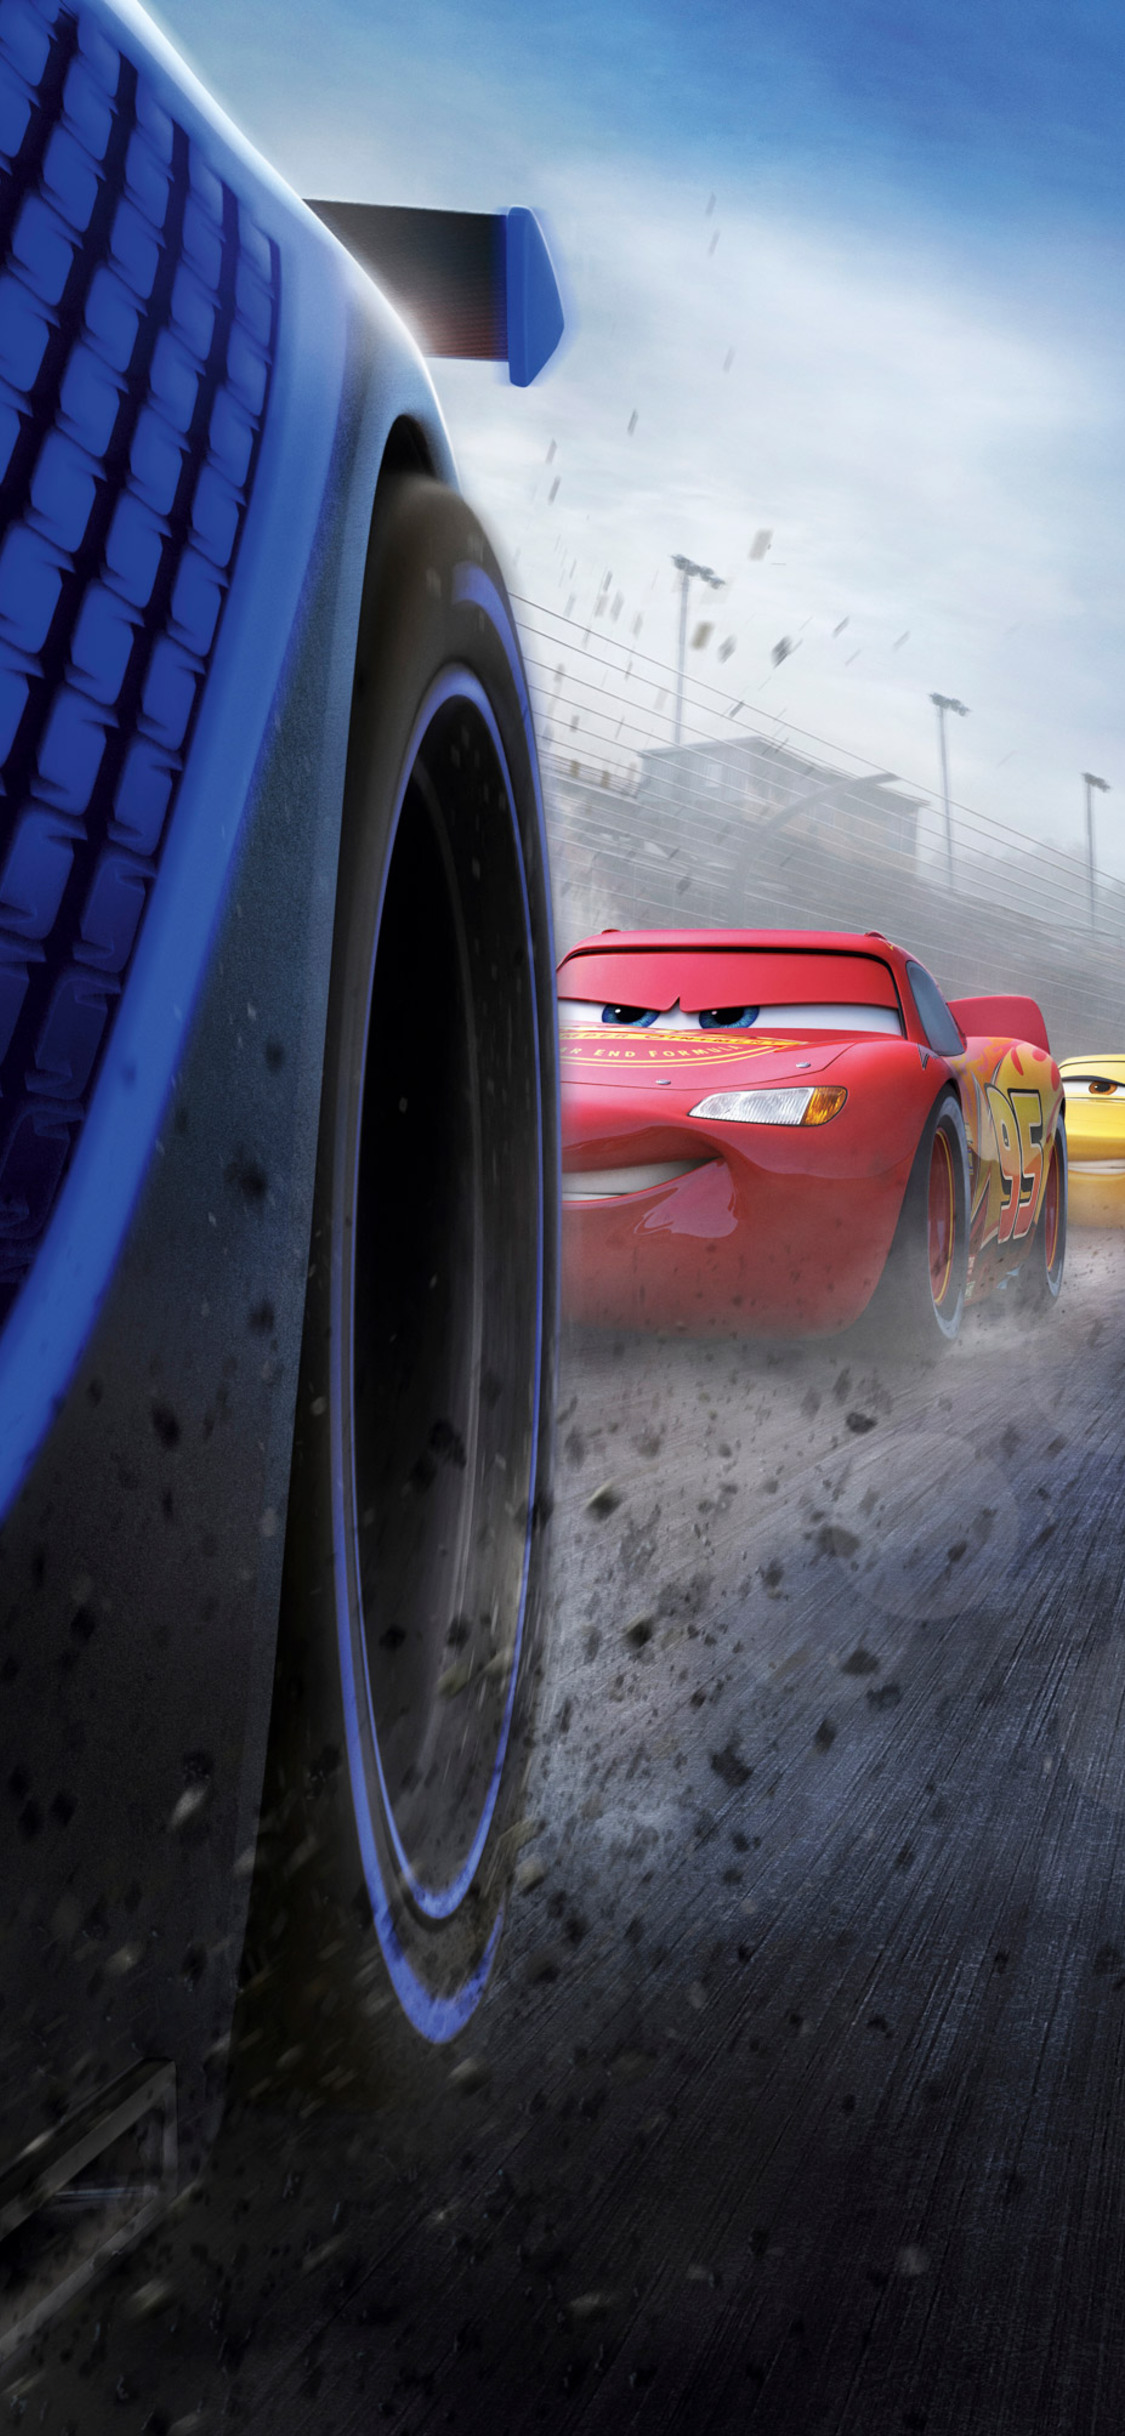 Cars Wallpaper For Iphone X Best Cars Wallpapers